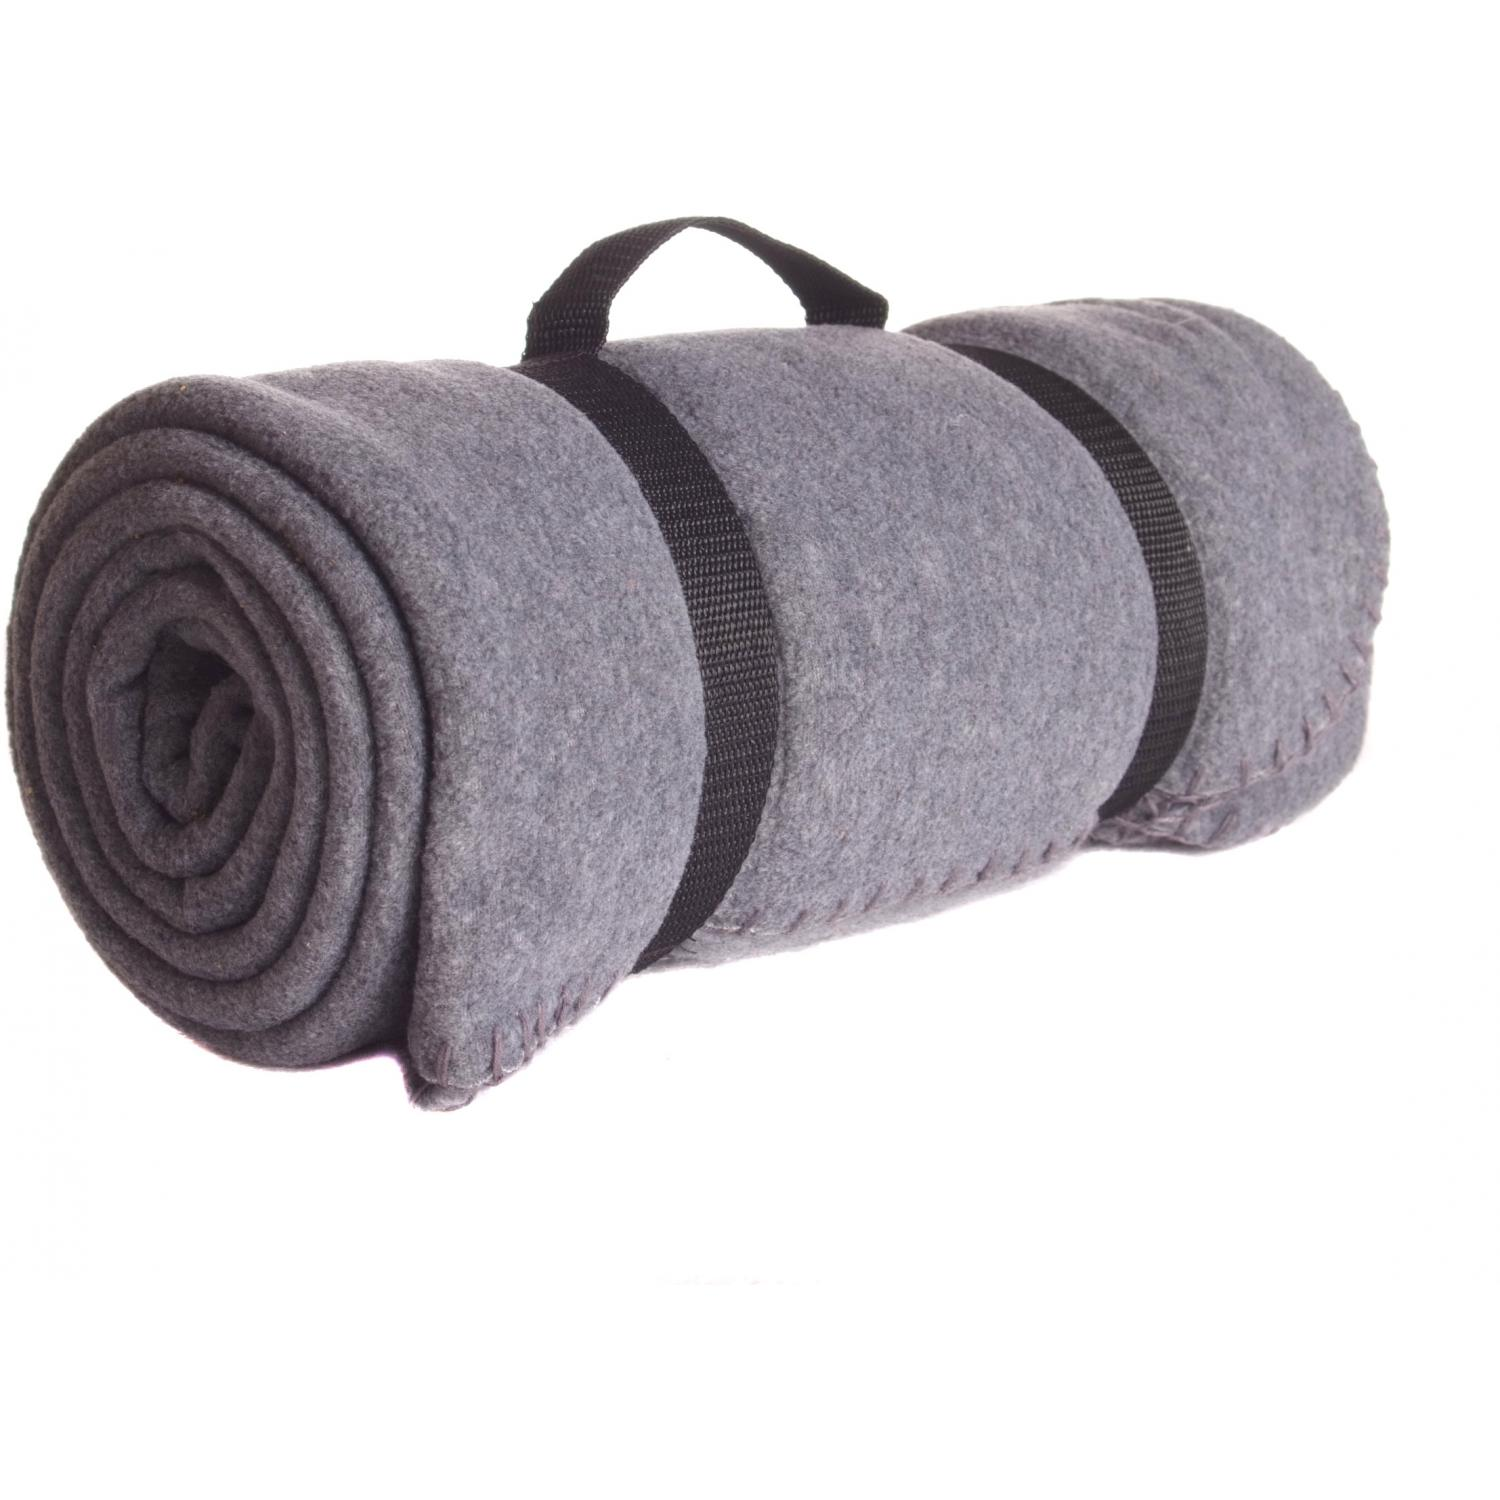 Picture of Port & Company Value Fleece Blanket With Strap - Midnight Heather